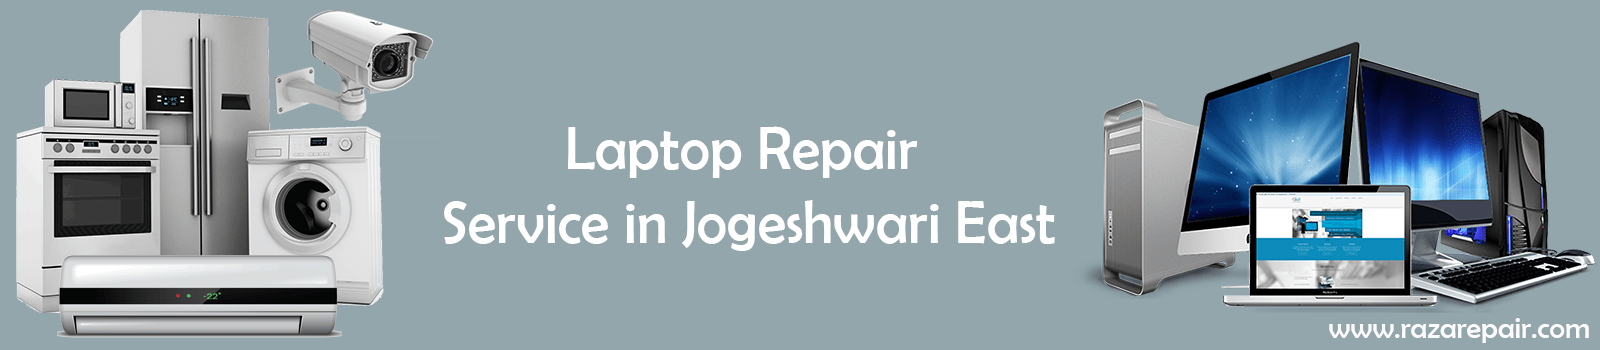 Laptop Repair Service in Jogeshwari East | Call Now 8655112626